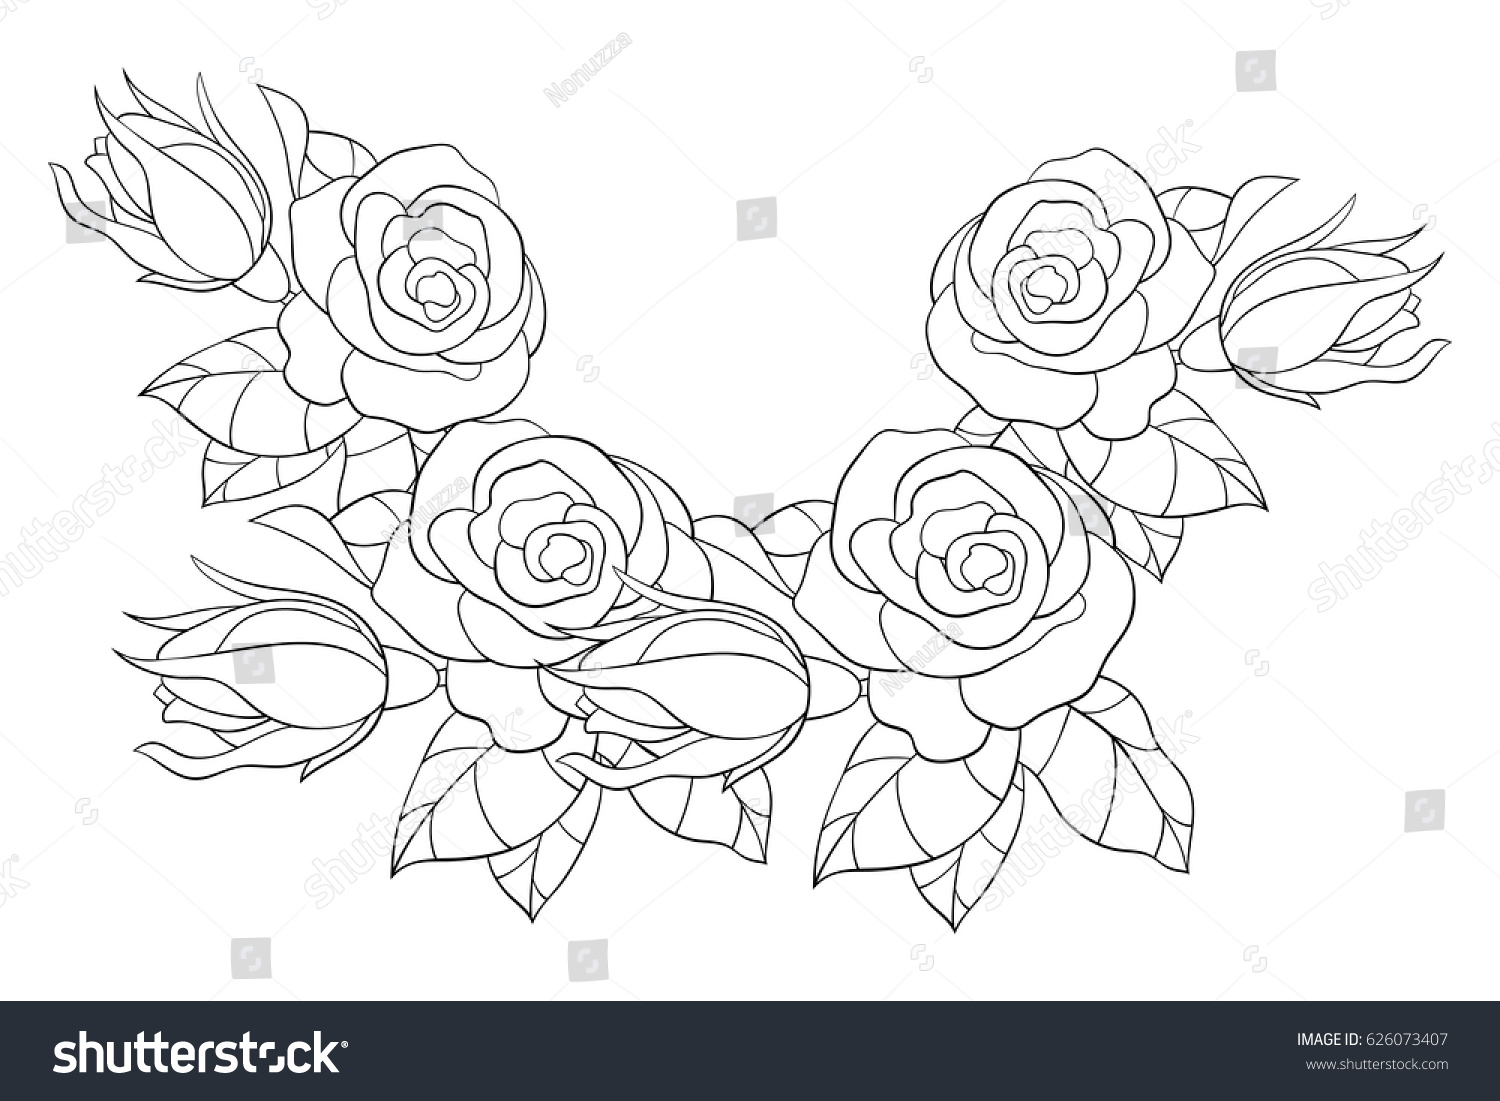 coloring page flowers leaves aa stock vector 626073407